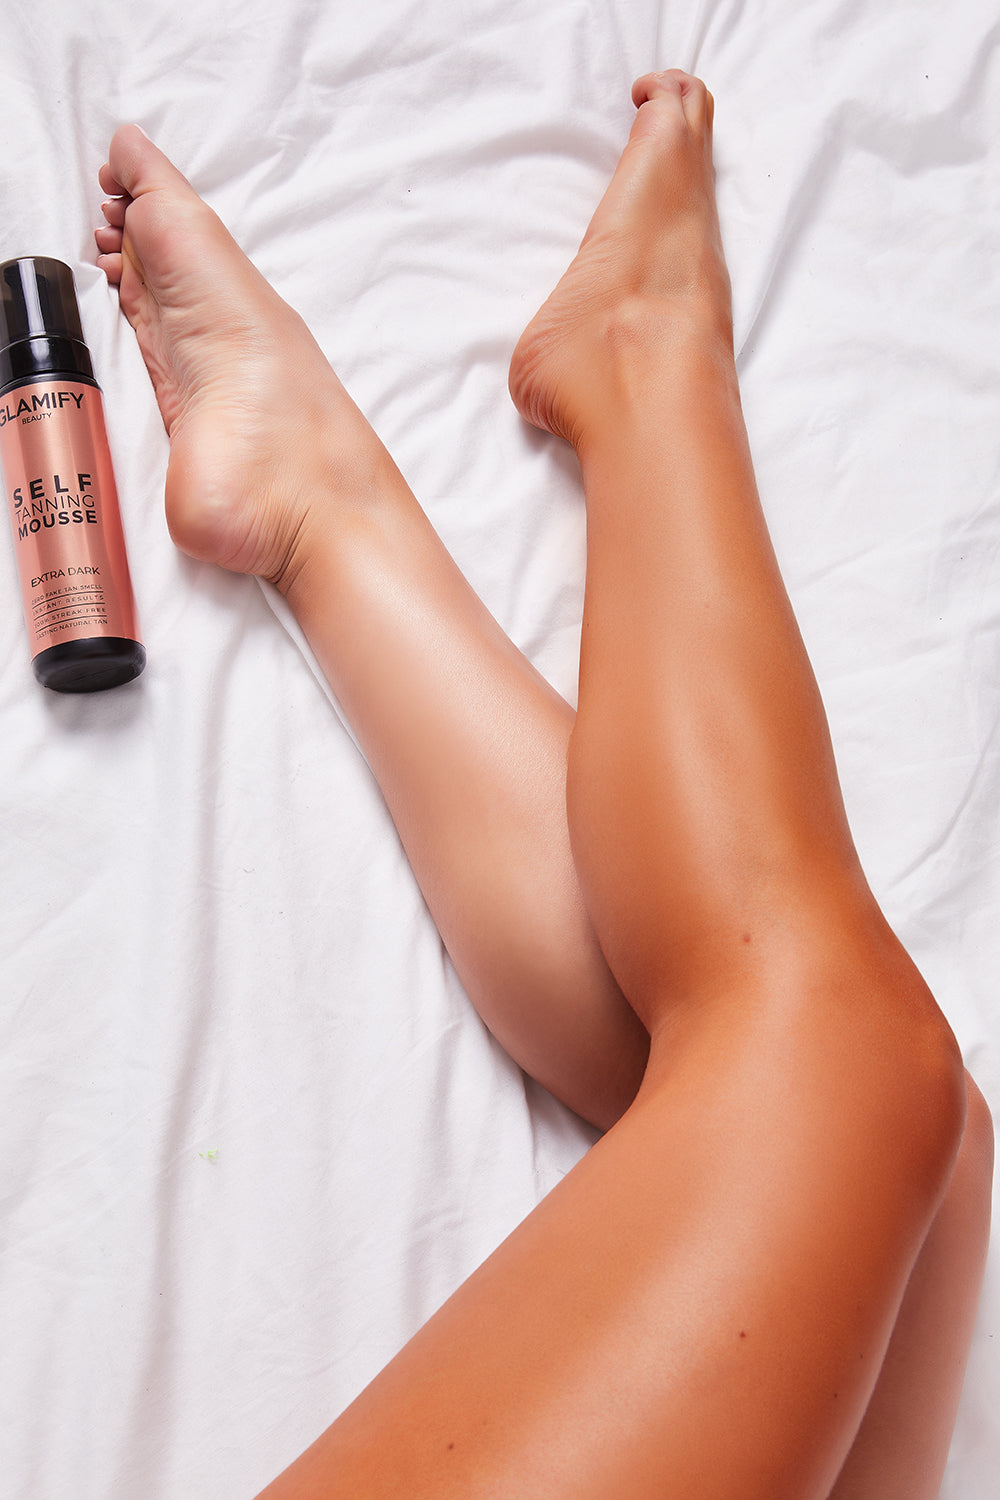 Glamify Beauty Melon Extra Dark Tanning Mousse